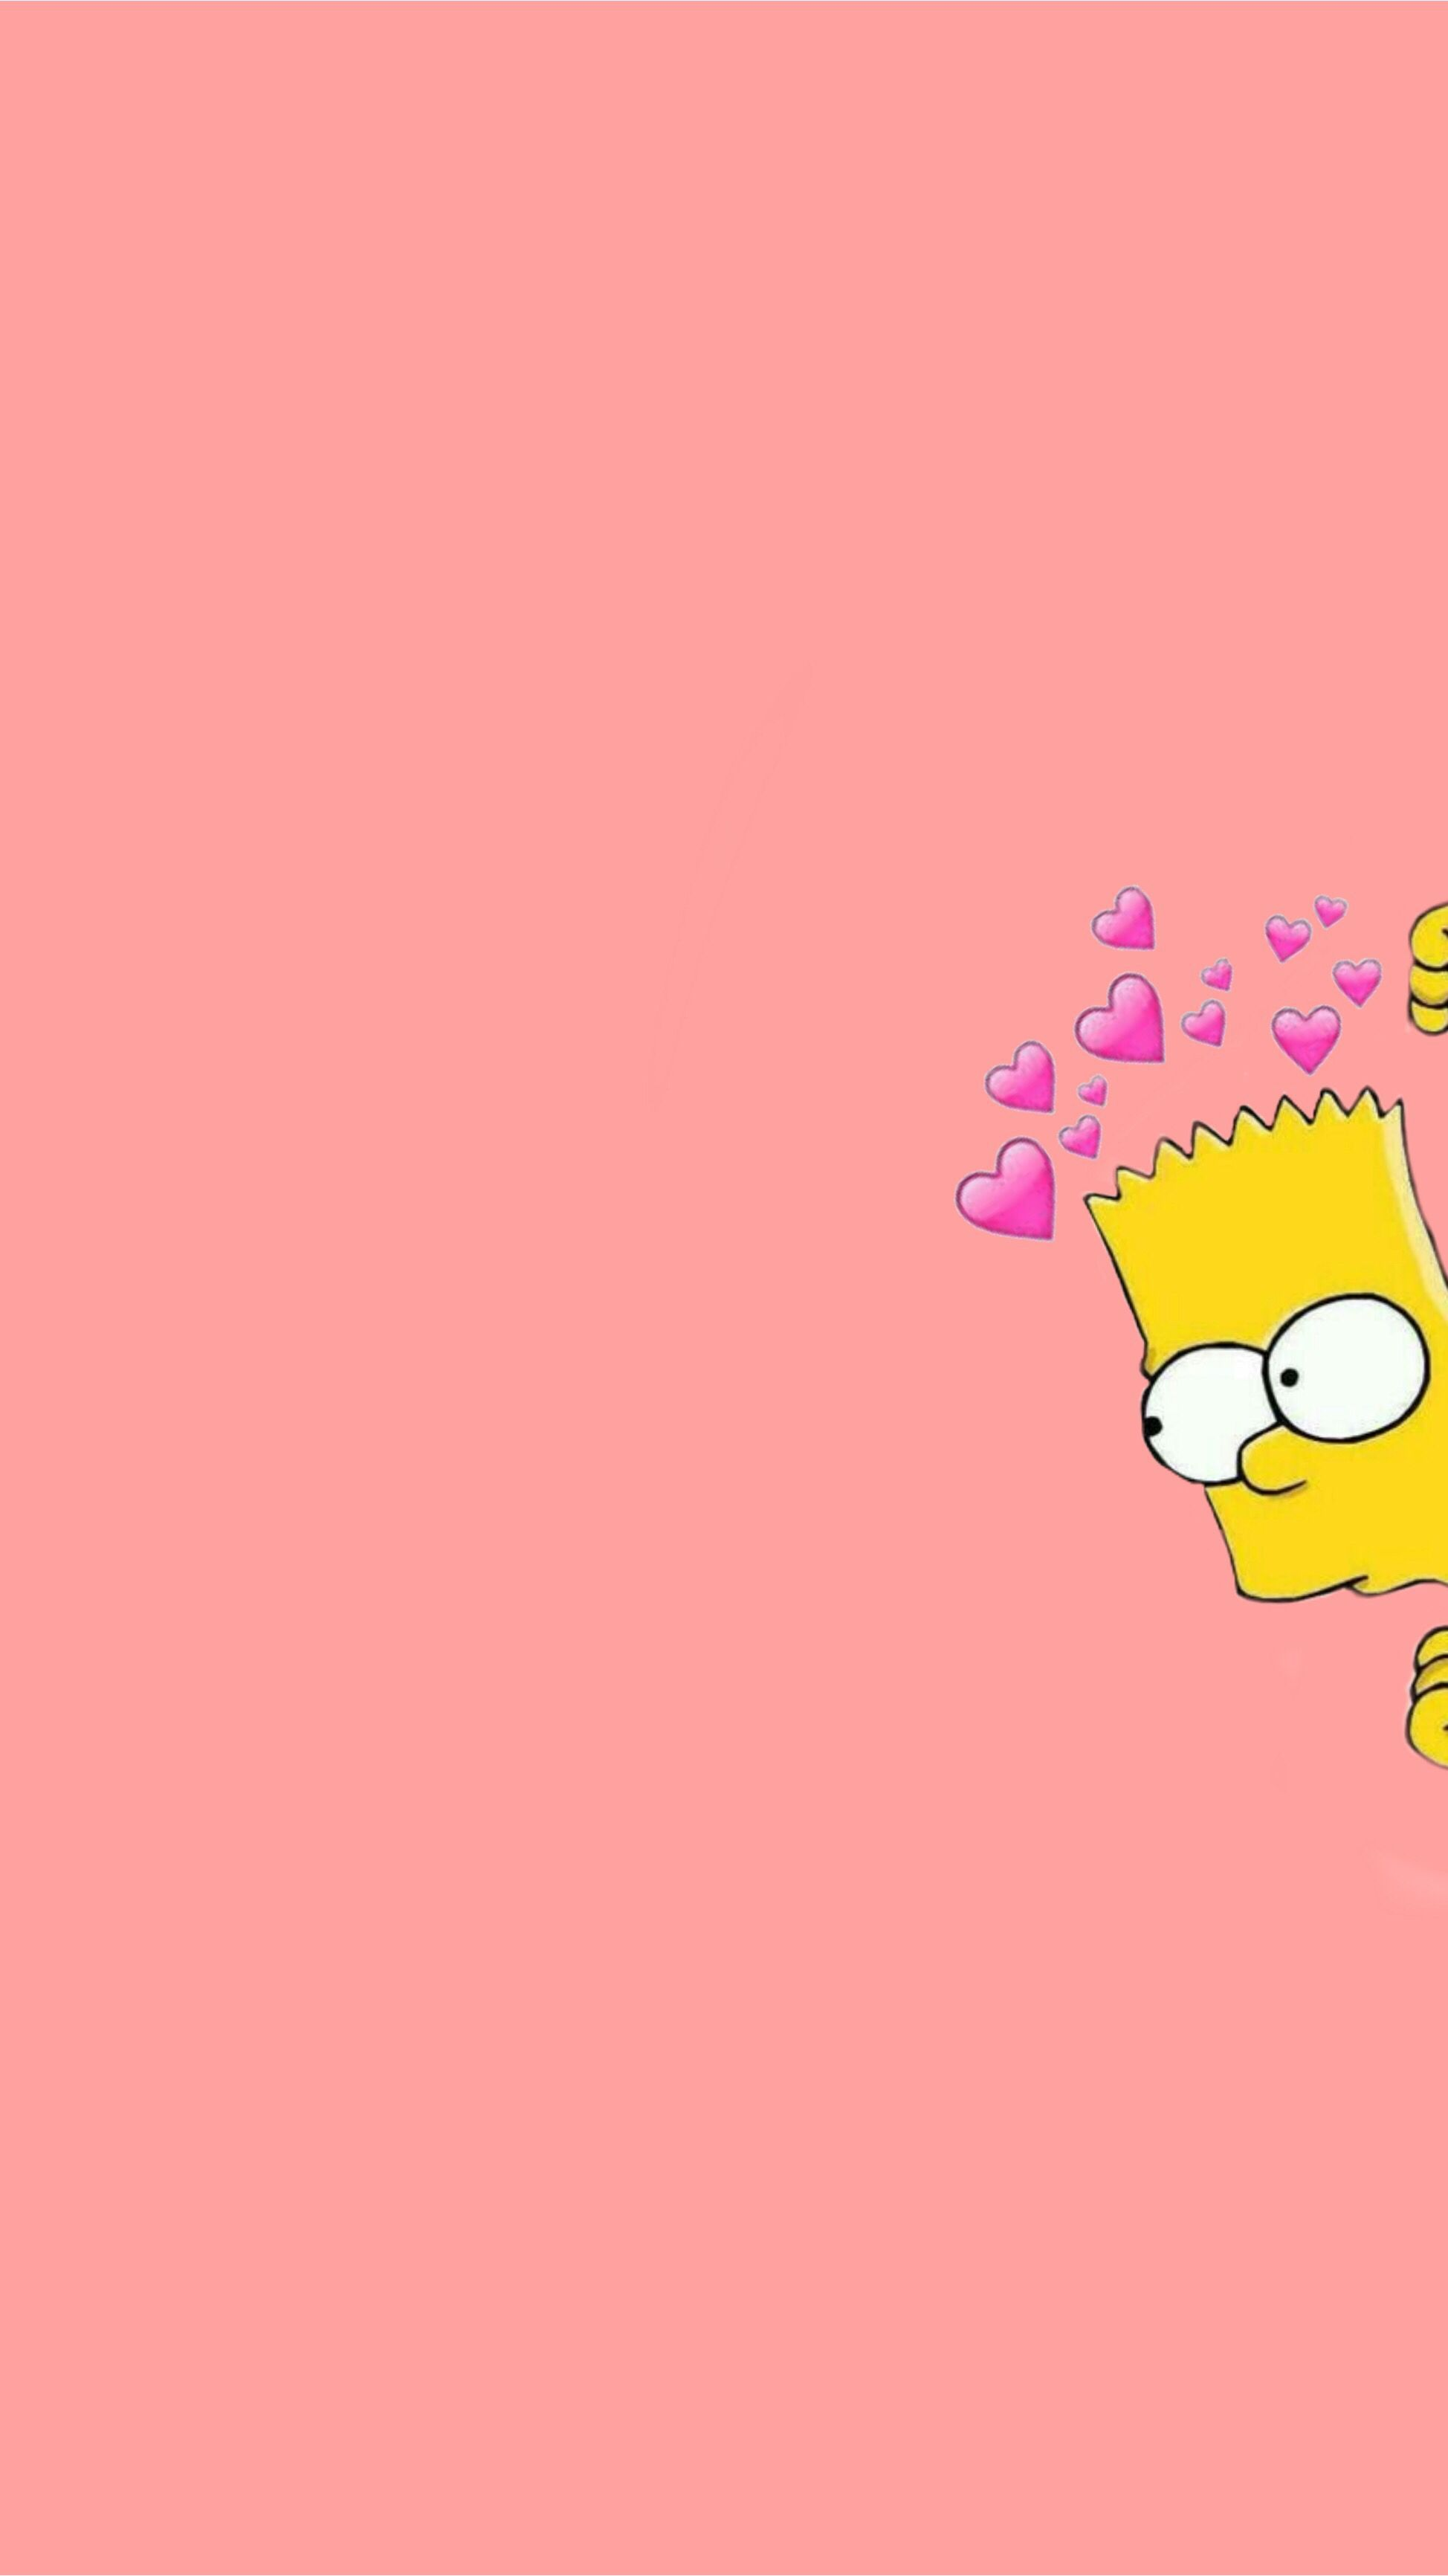 Cute Simpsons Wallpapers Top Free Cute Simpsons Backgrounds